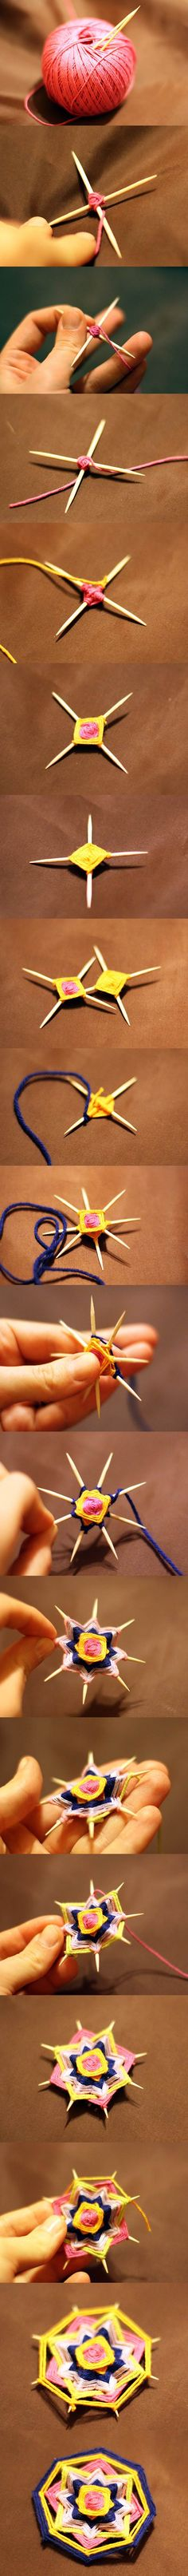 mandala en laine tissée DIY Weave a Mandala Brooch with Toothpicks Crafts To Do, Yarn Crafts, Crafts For Kids, Arts And Crafts, Kids Diy, Ideias Diy, String Art, Handicraft, Diy Art